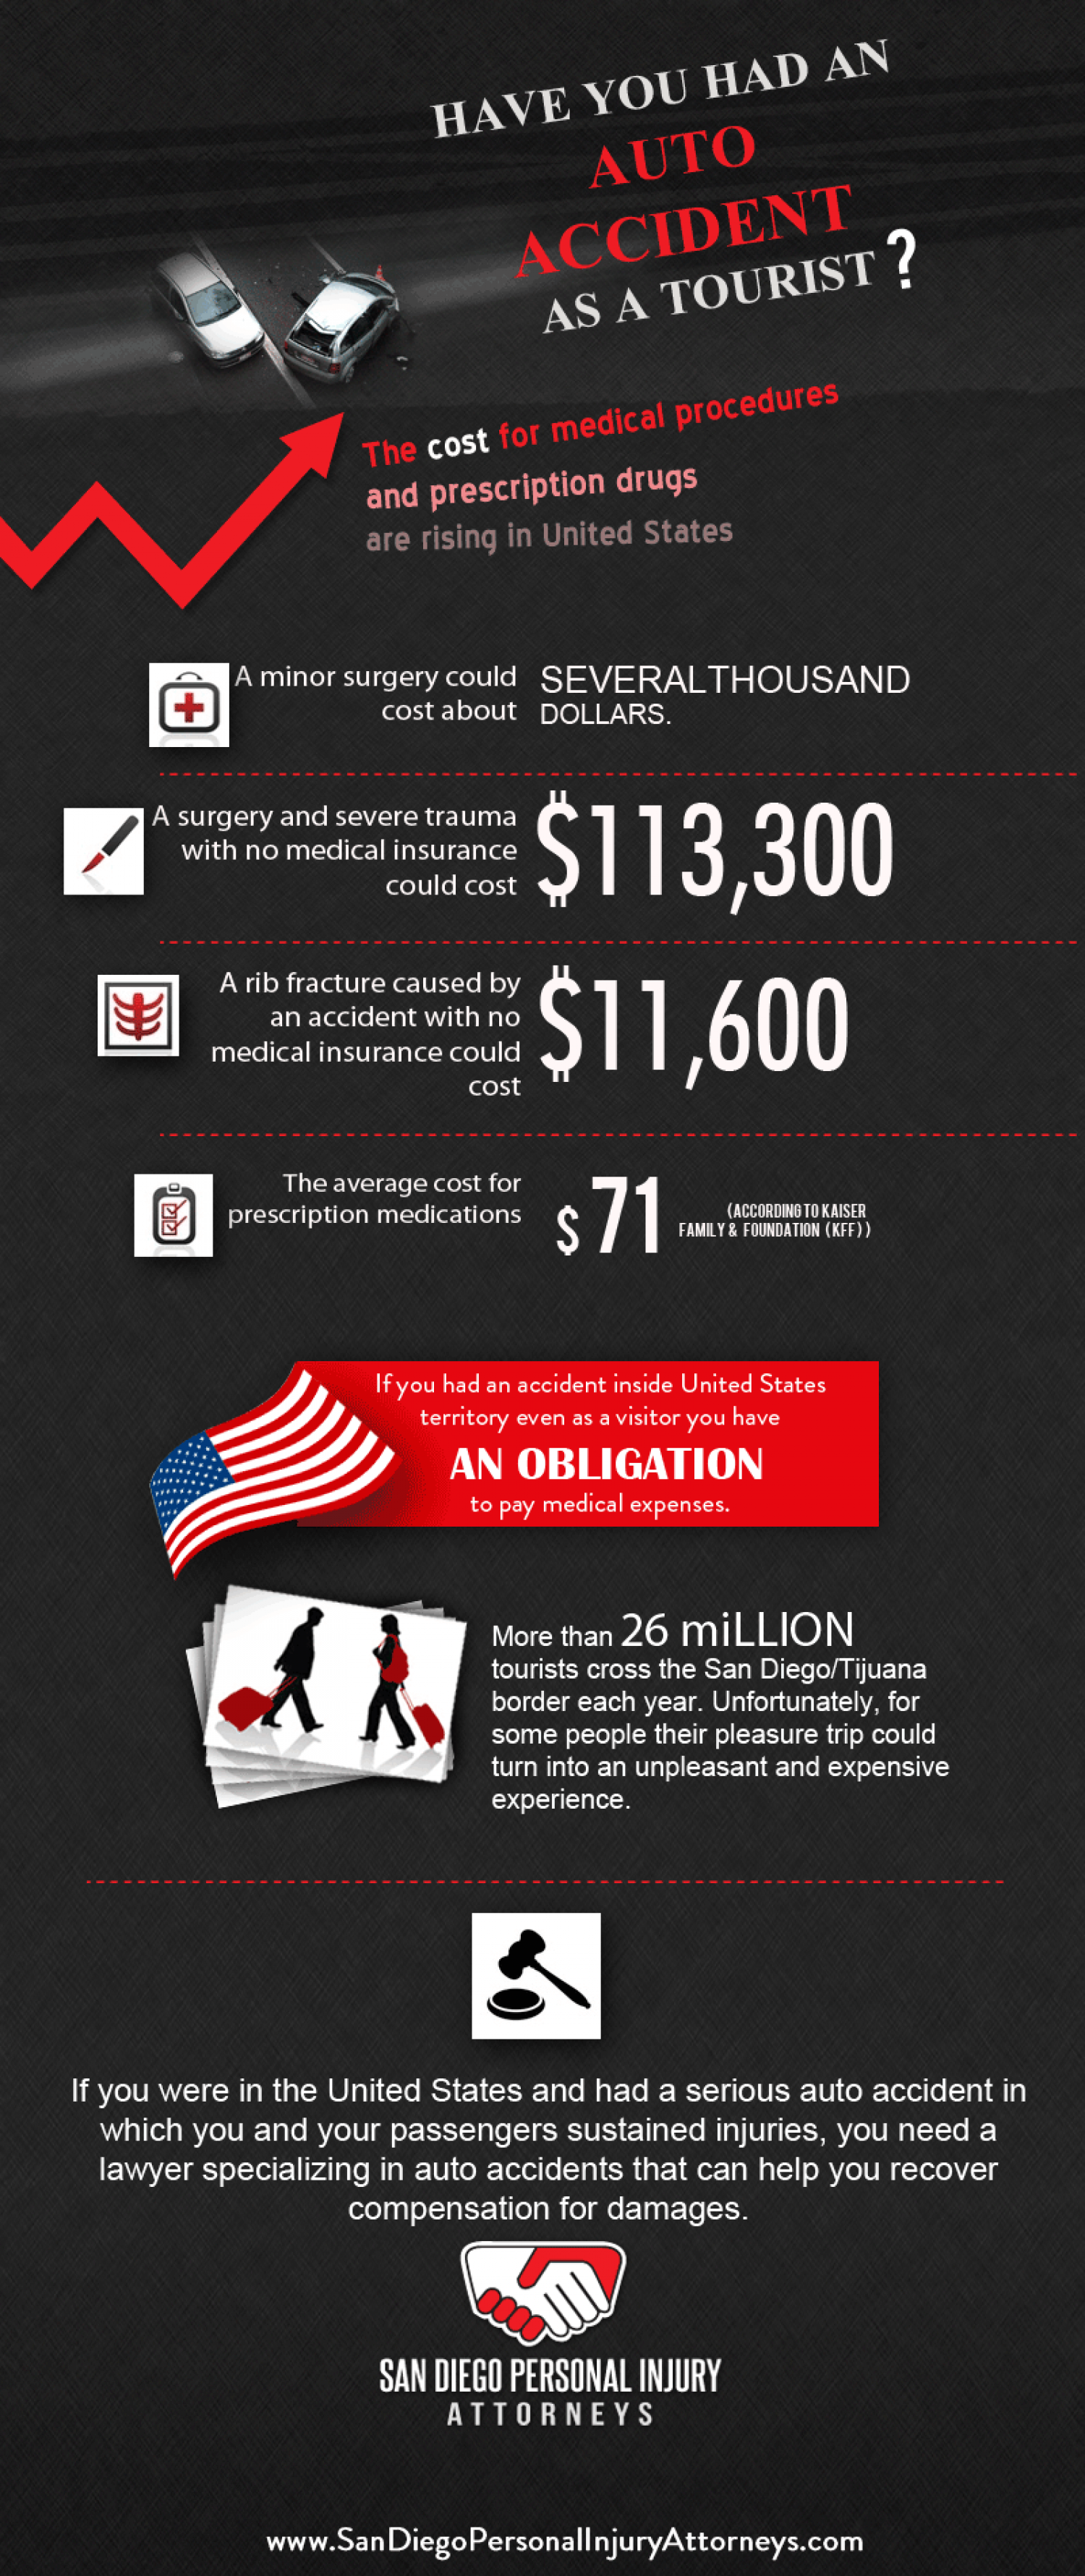 Did you have an accident as a tourist in the U.S.? Infographic